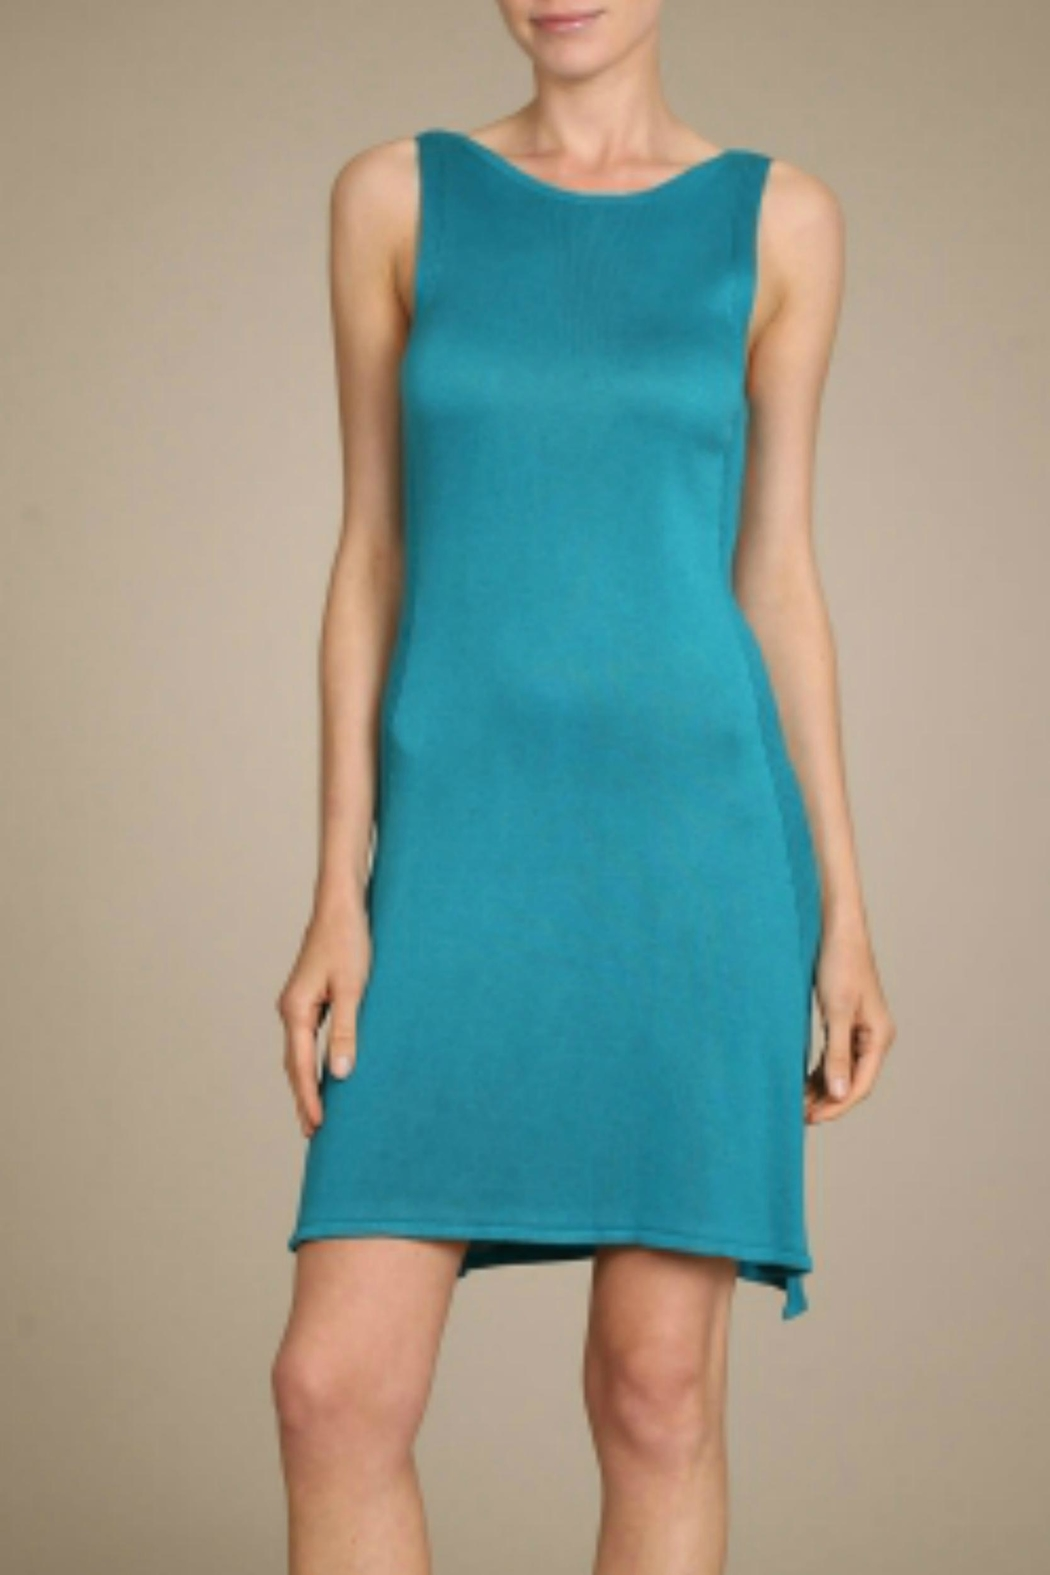 M. Rena Sleeveless Knit Dress - Main Image